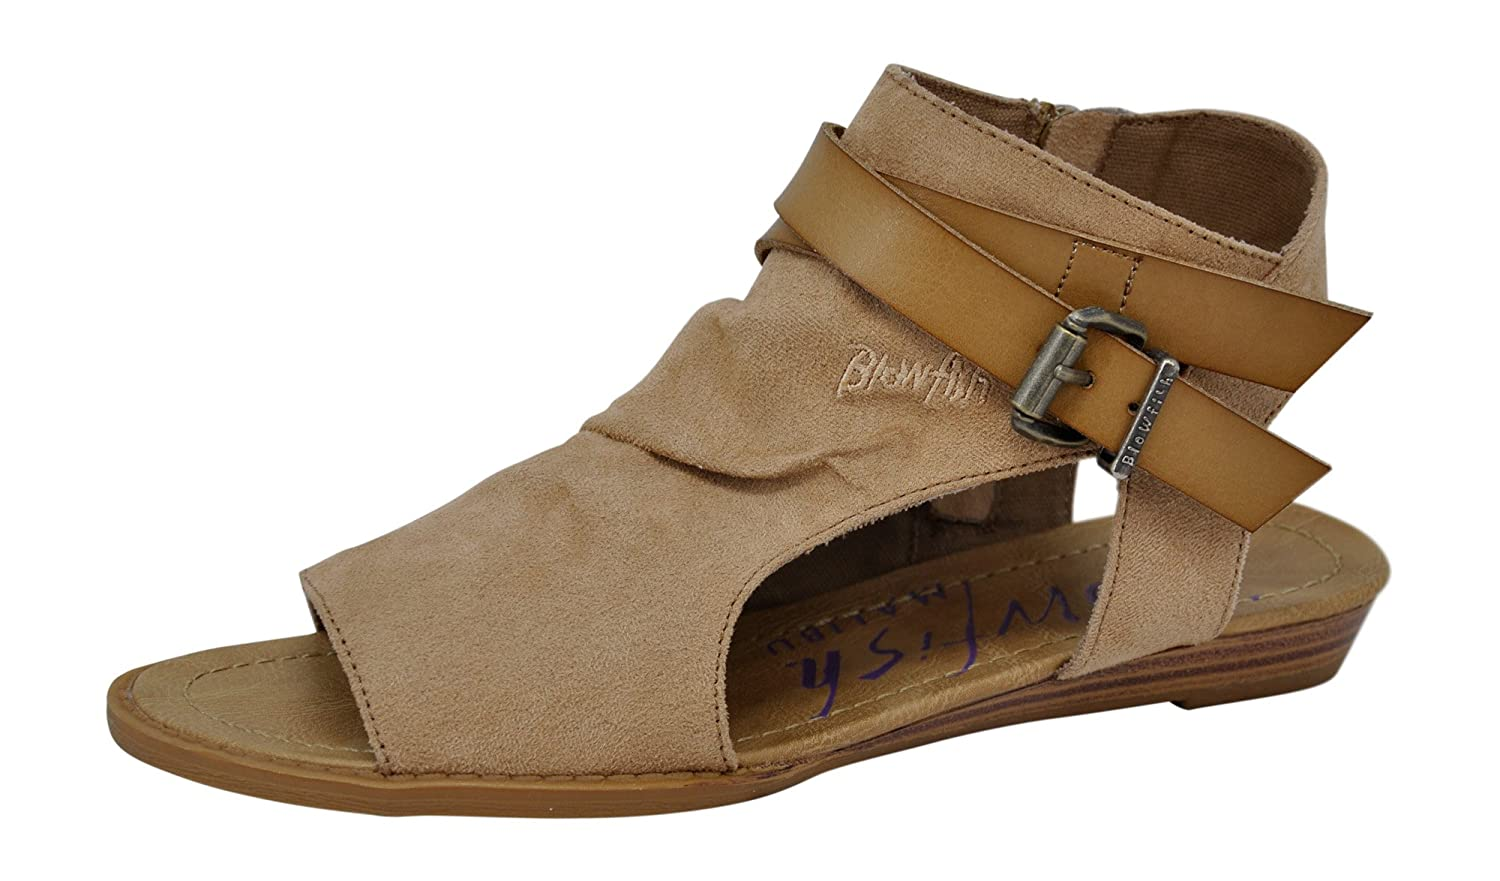 Natural Suede Sand Strap Blowfish Women's Balla Wedge Sandal